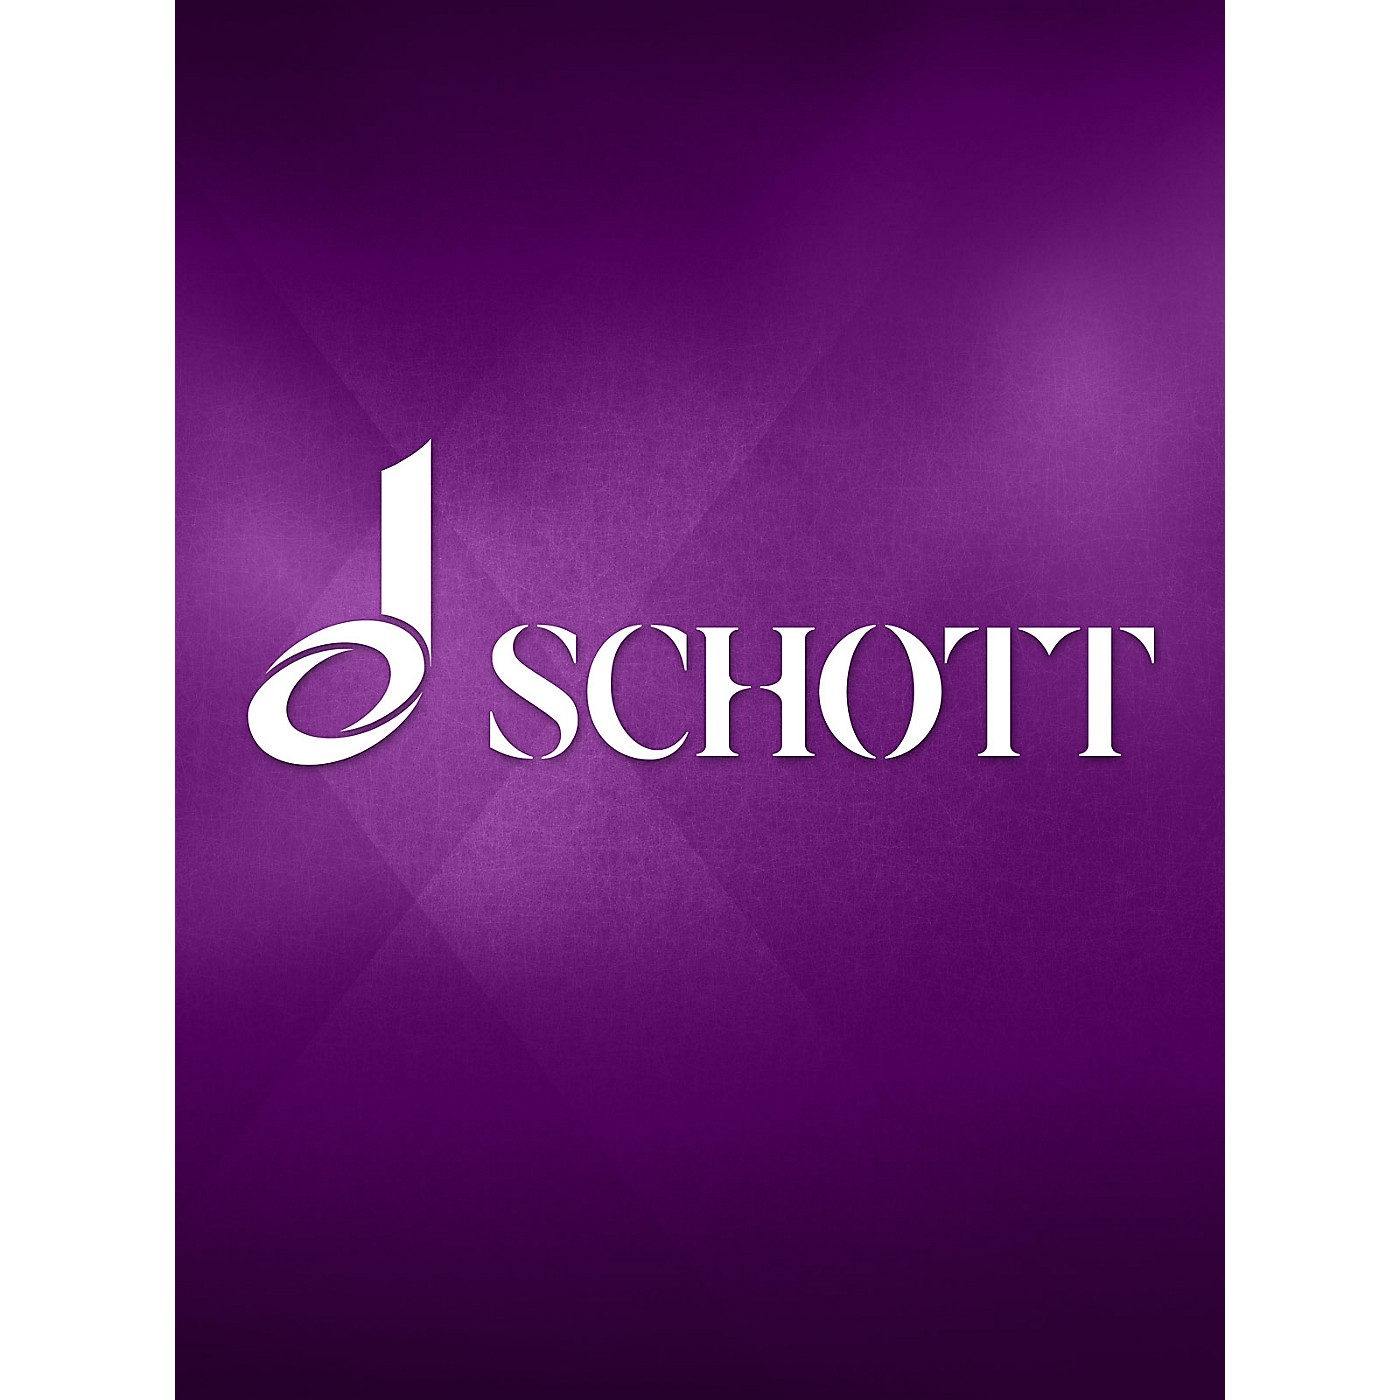 Schott Trio in D minor (for Treble Recorder, Violin, and B.C.) Schott Series by Georg Philipp Telemann thumbnail